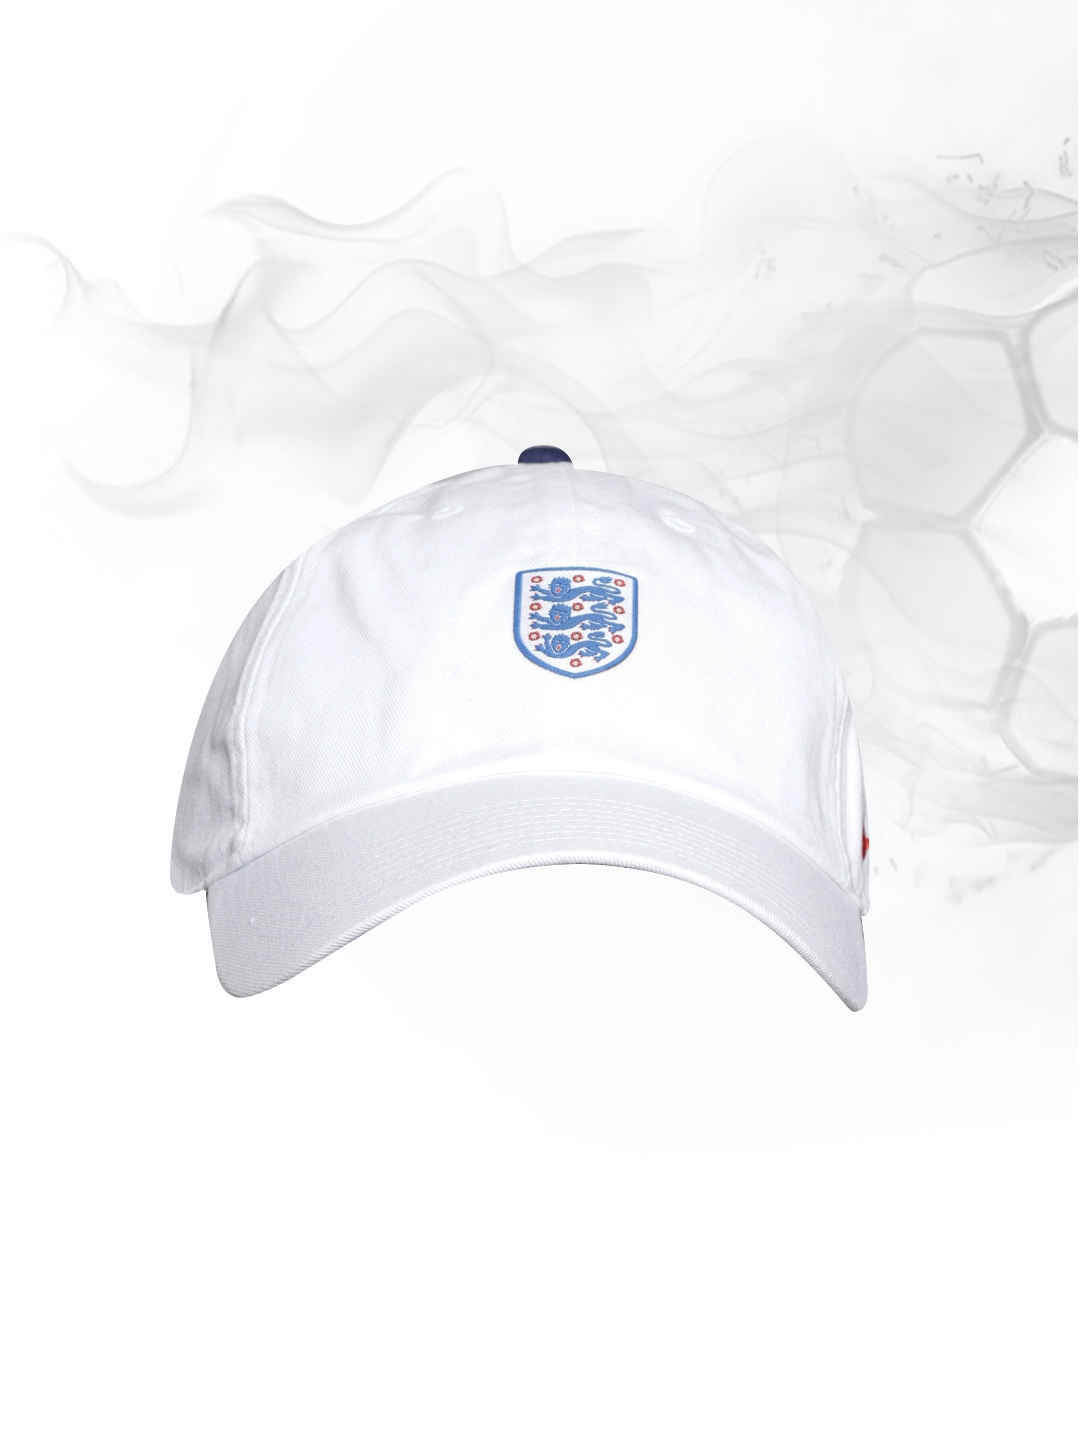 Buy Nike Unisex White FFF H86 Core Solid Cap - Caps for Unisex ... f74a87fbe95b